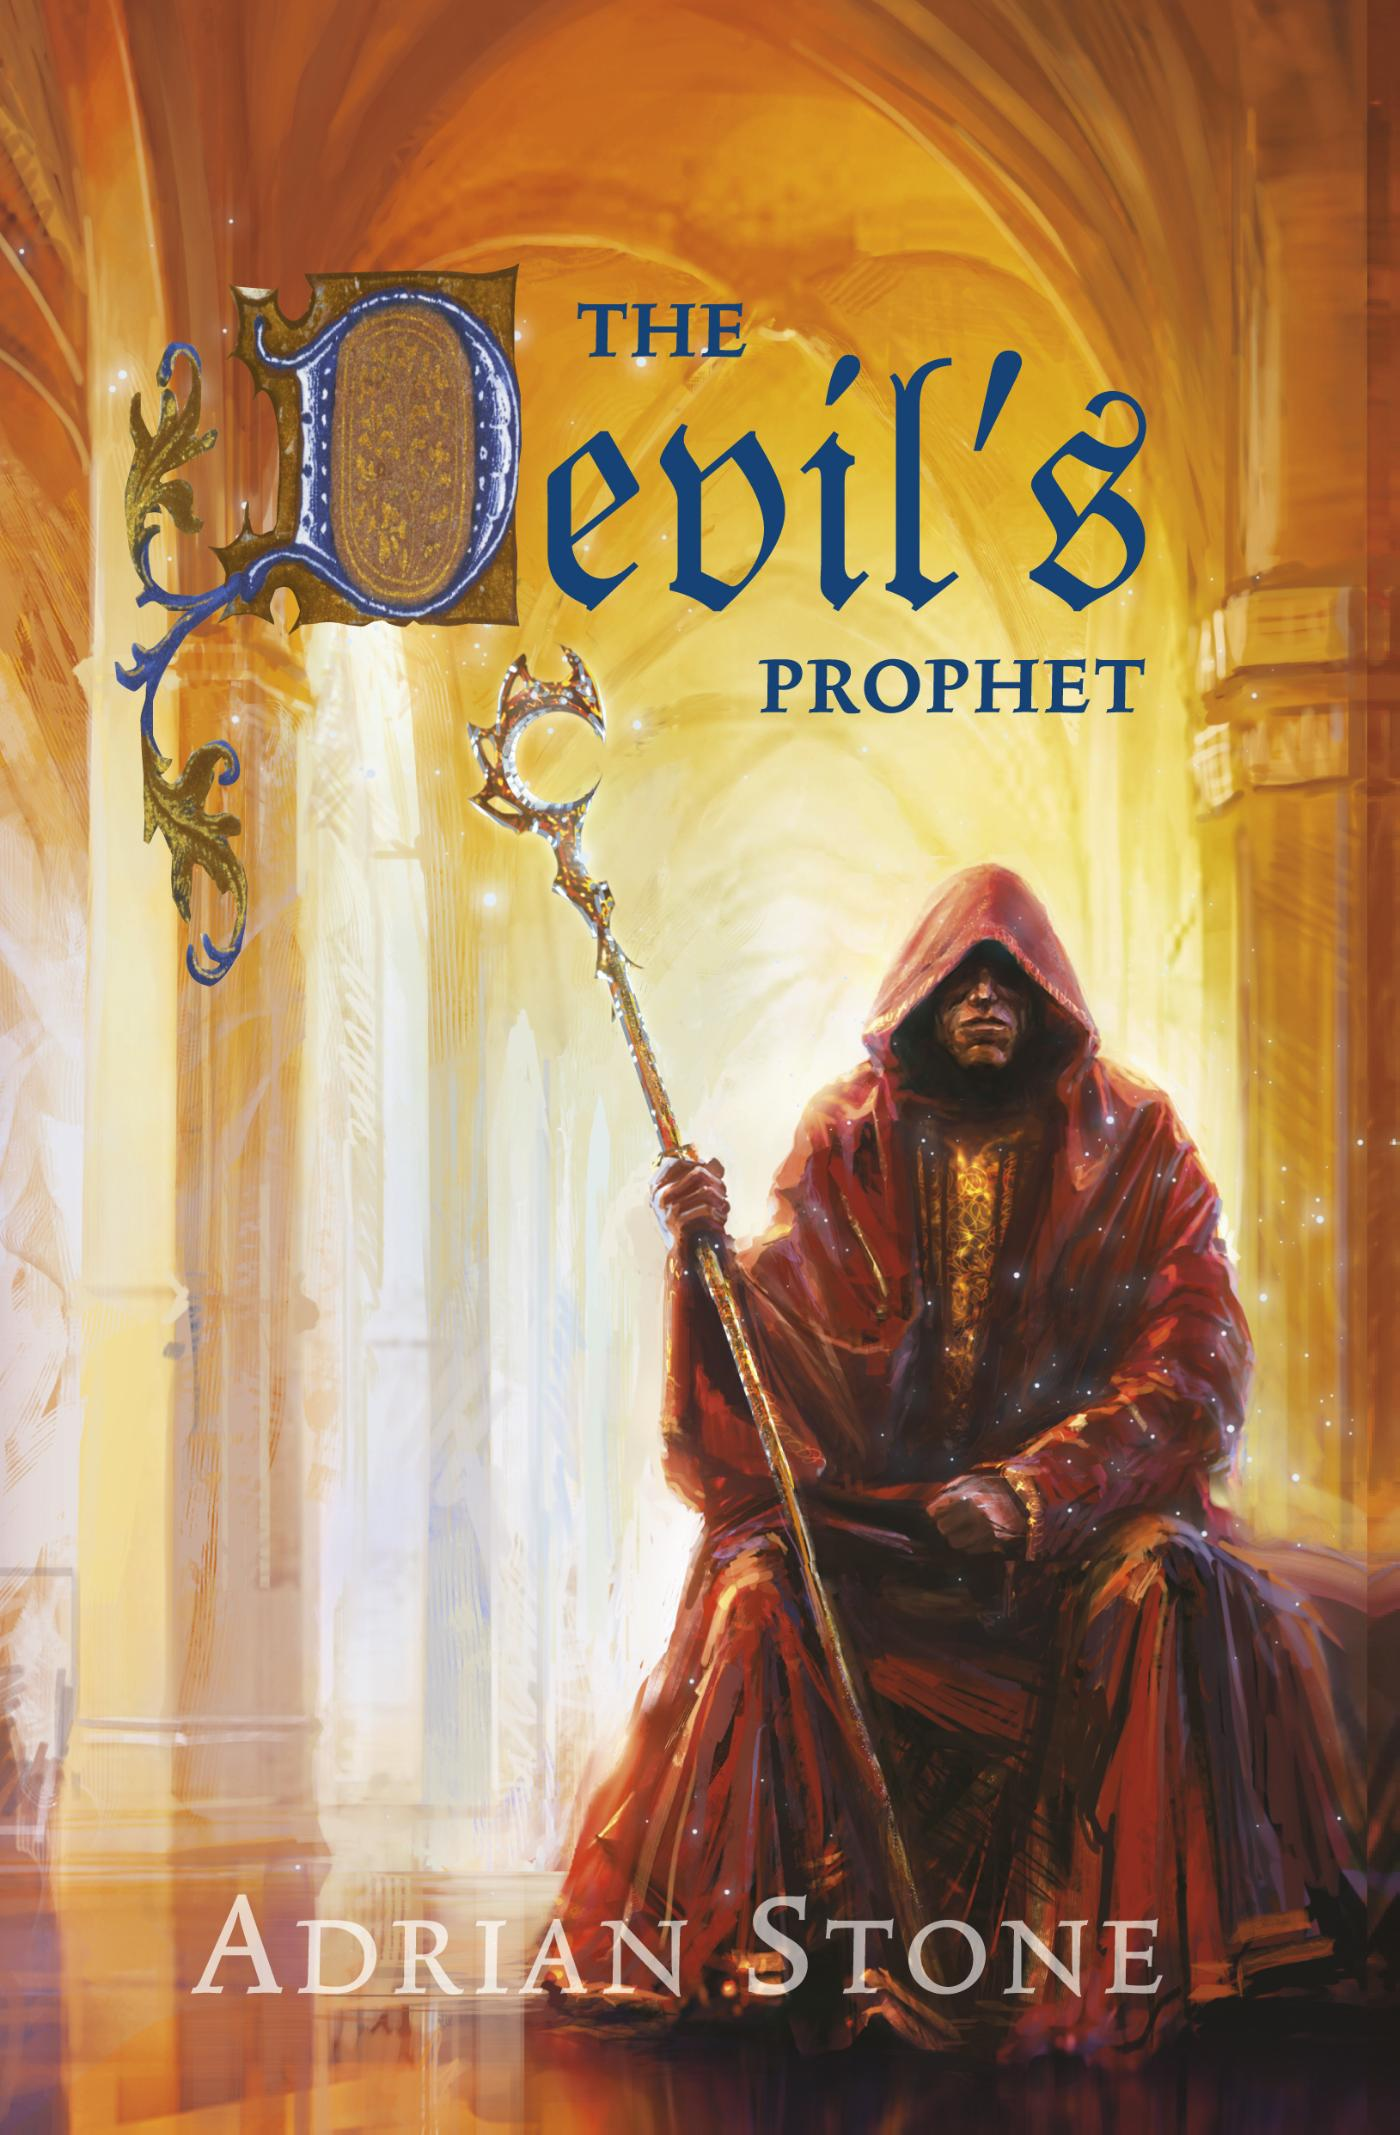 The devil's prophet